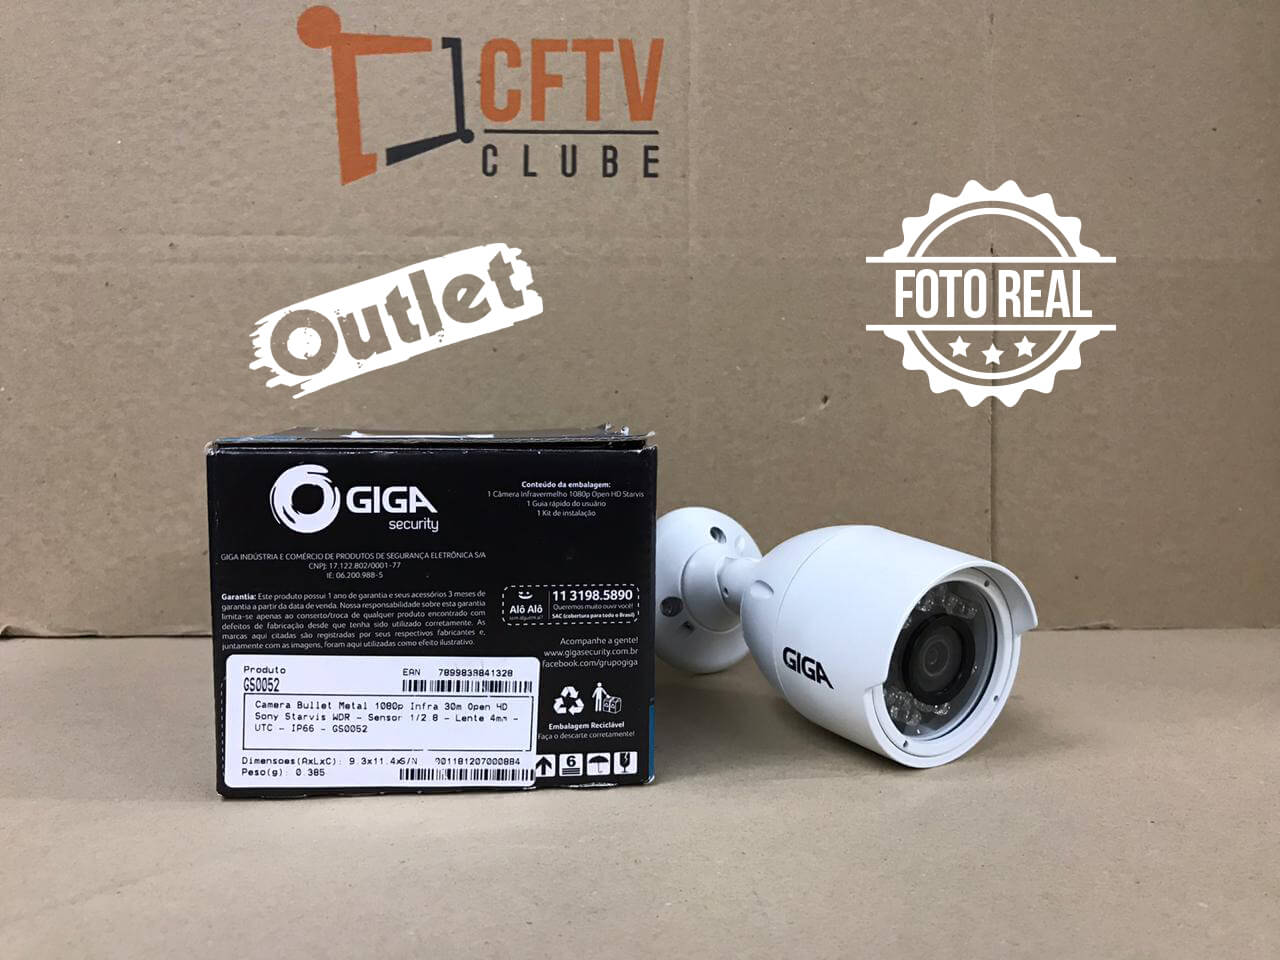 Outlet - Câmera Giga GS0052 Bullet Open HD Sony Starvis IR WDR 30M 4MM IP66 Full HD (2.0MP | 1080P | 2.8mm | Metal)   - CFTV Clube | Brasil